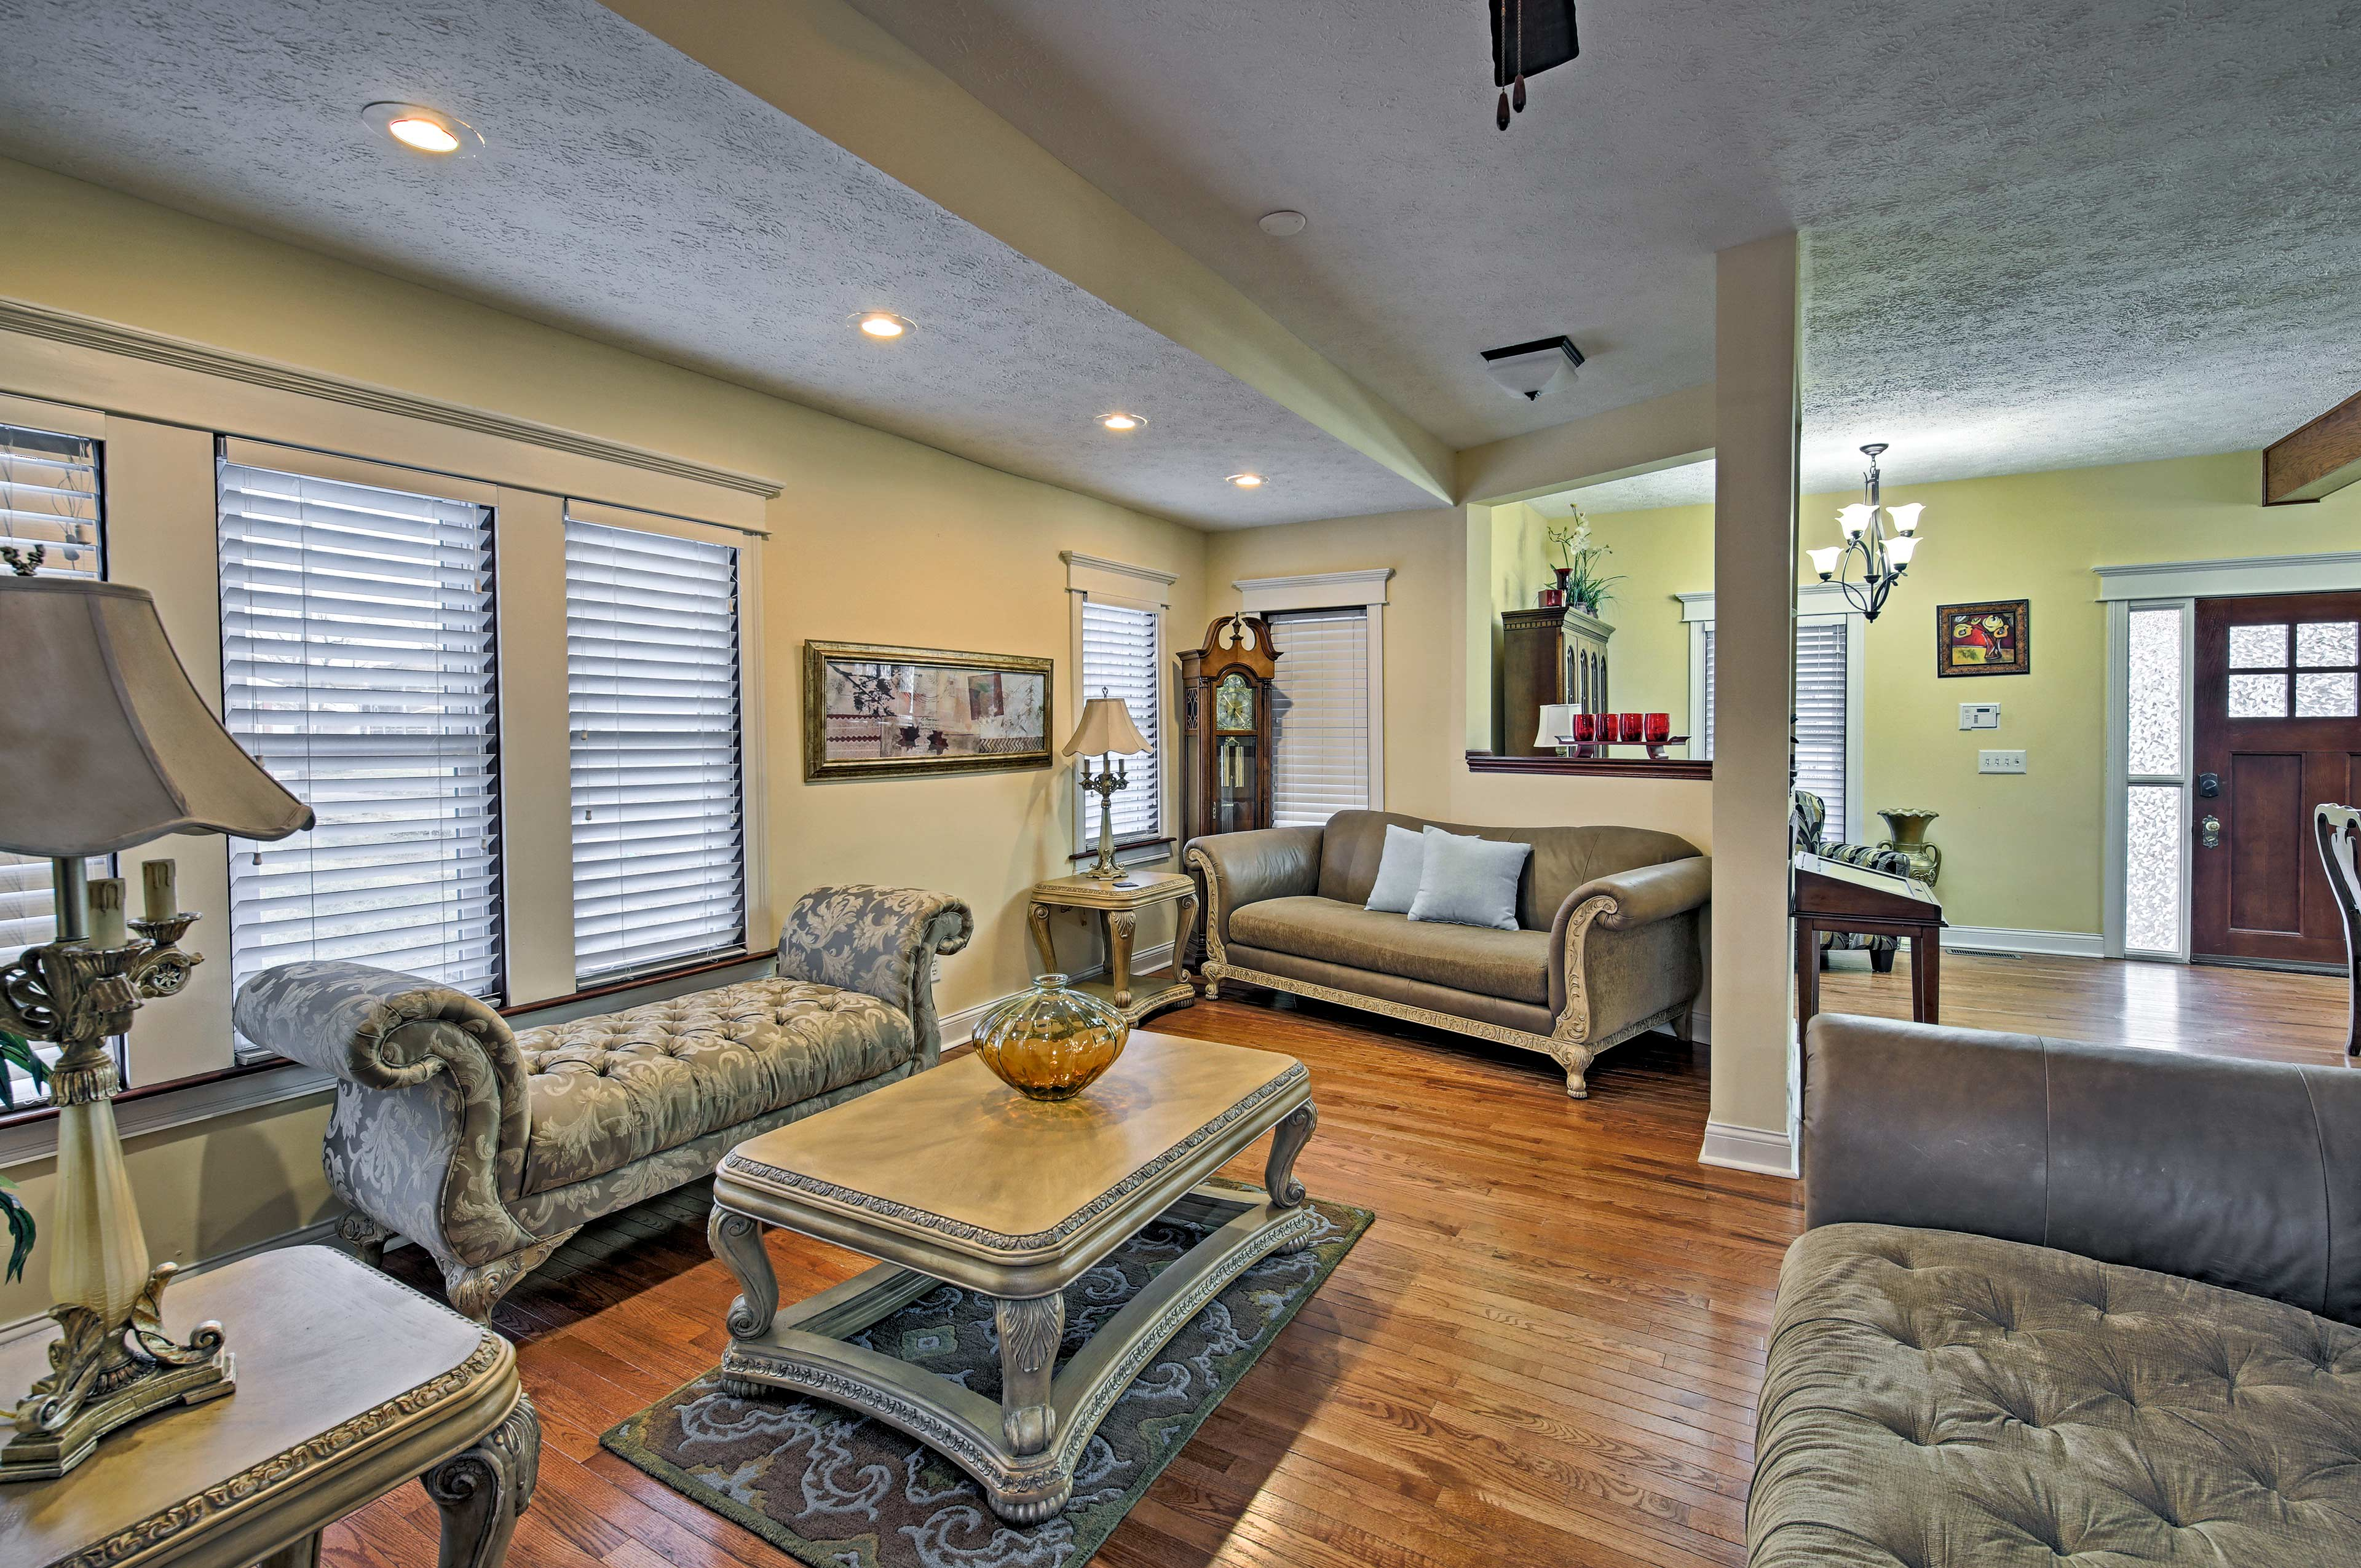 With plenty of furniture, there's room for everyone to spread out and unwind.